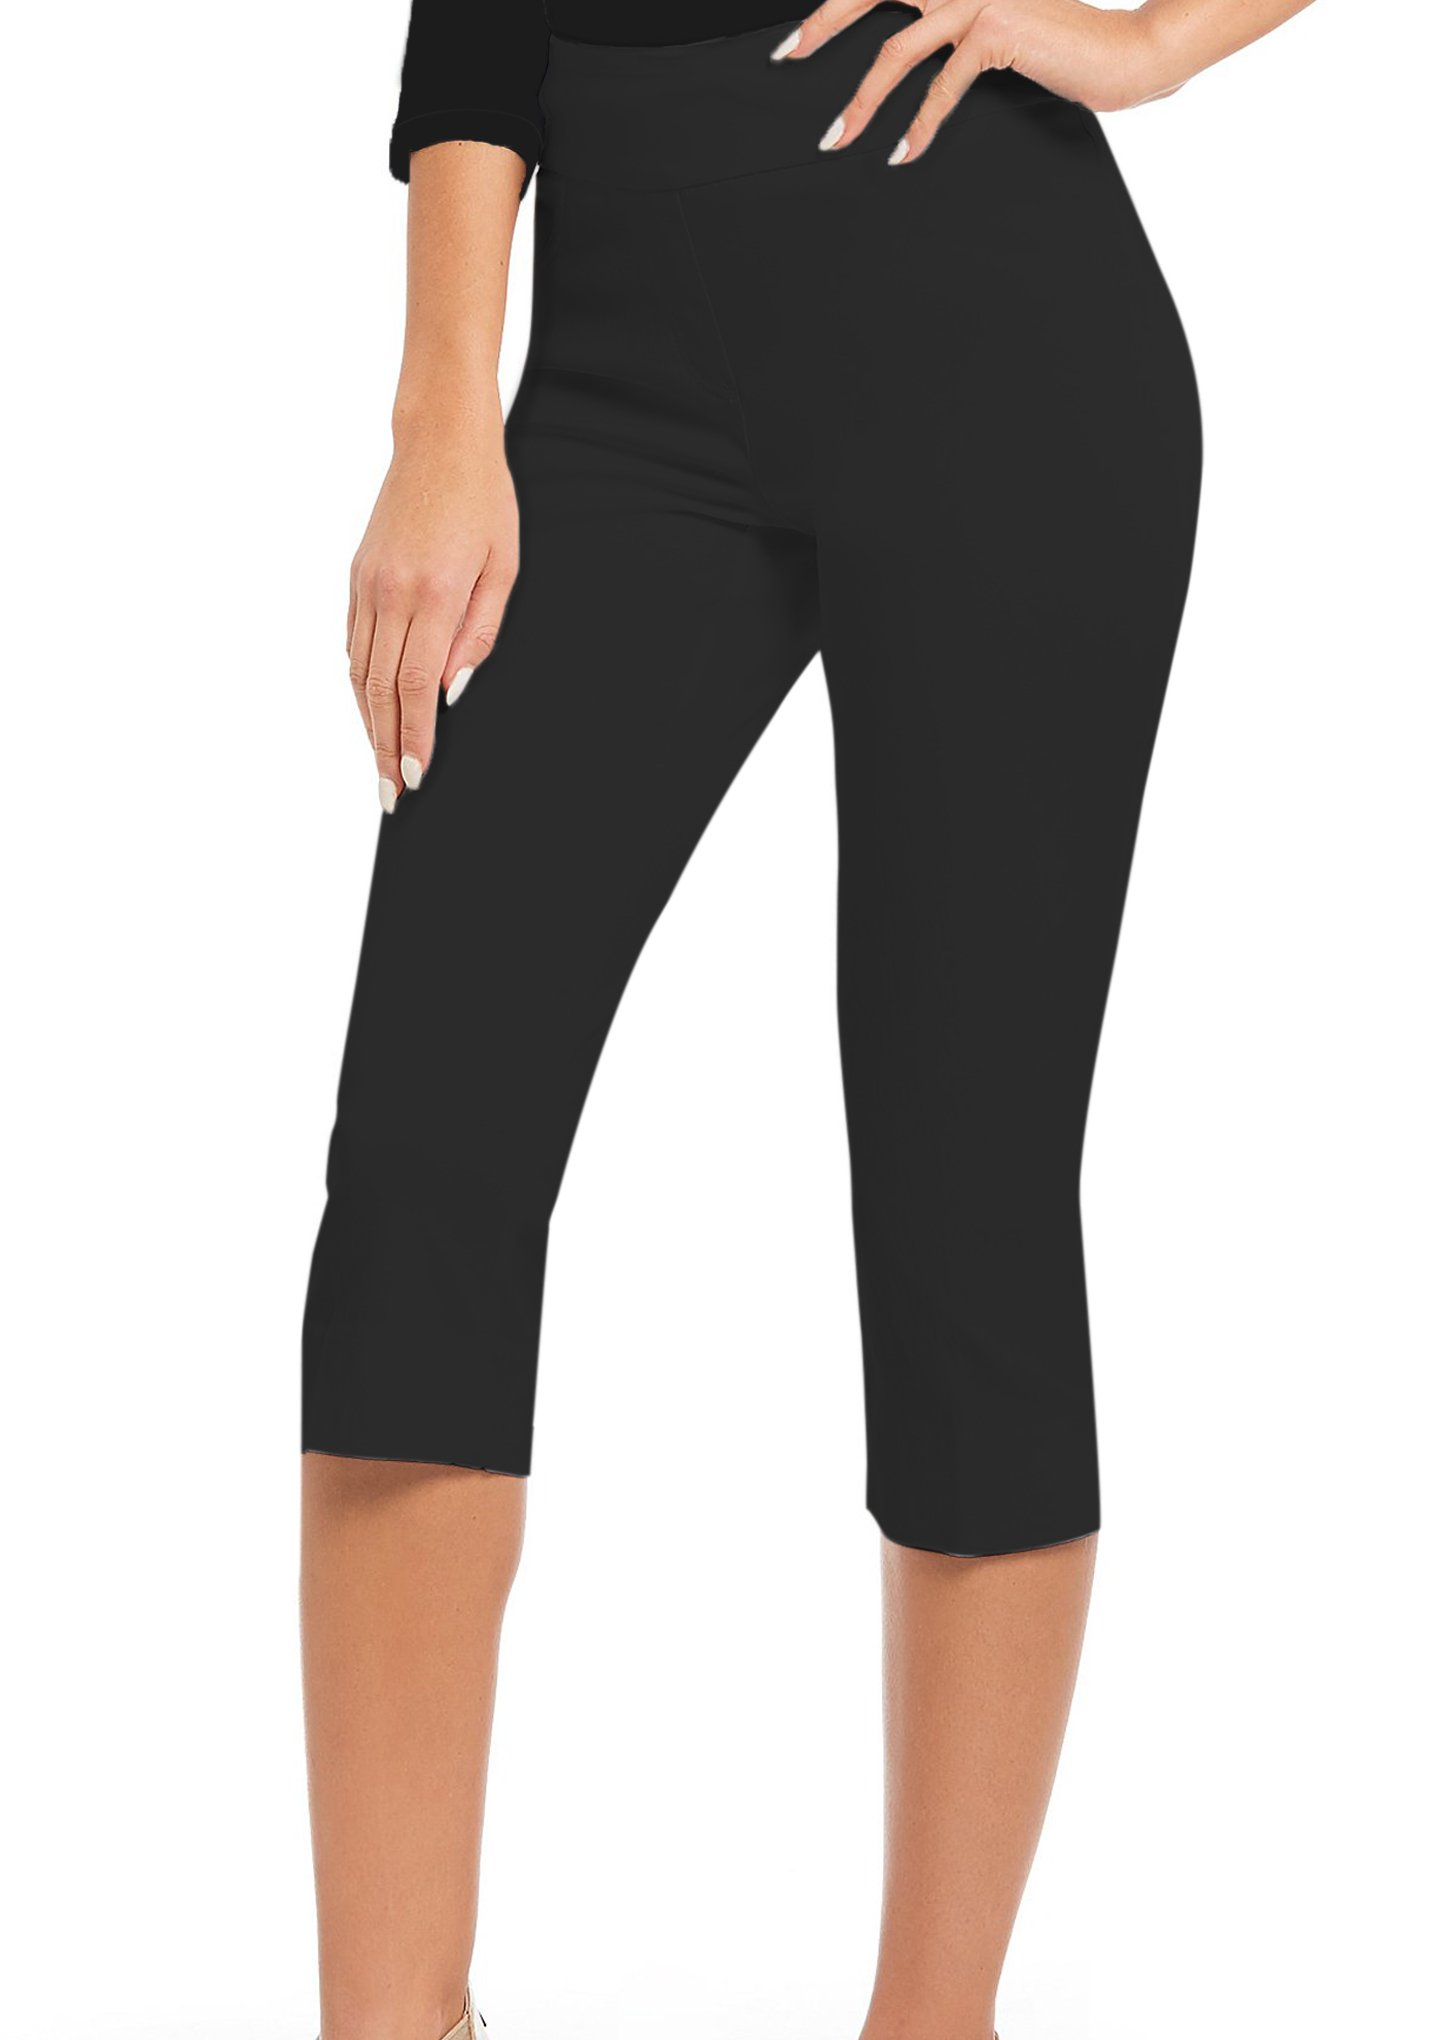 HyBrid & Company Women Stretch Pull On Business Millennium Capri Pants KQ44972 Black M